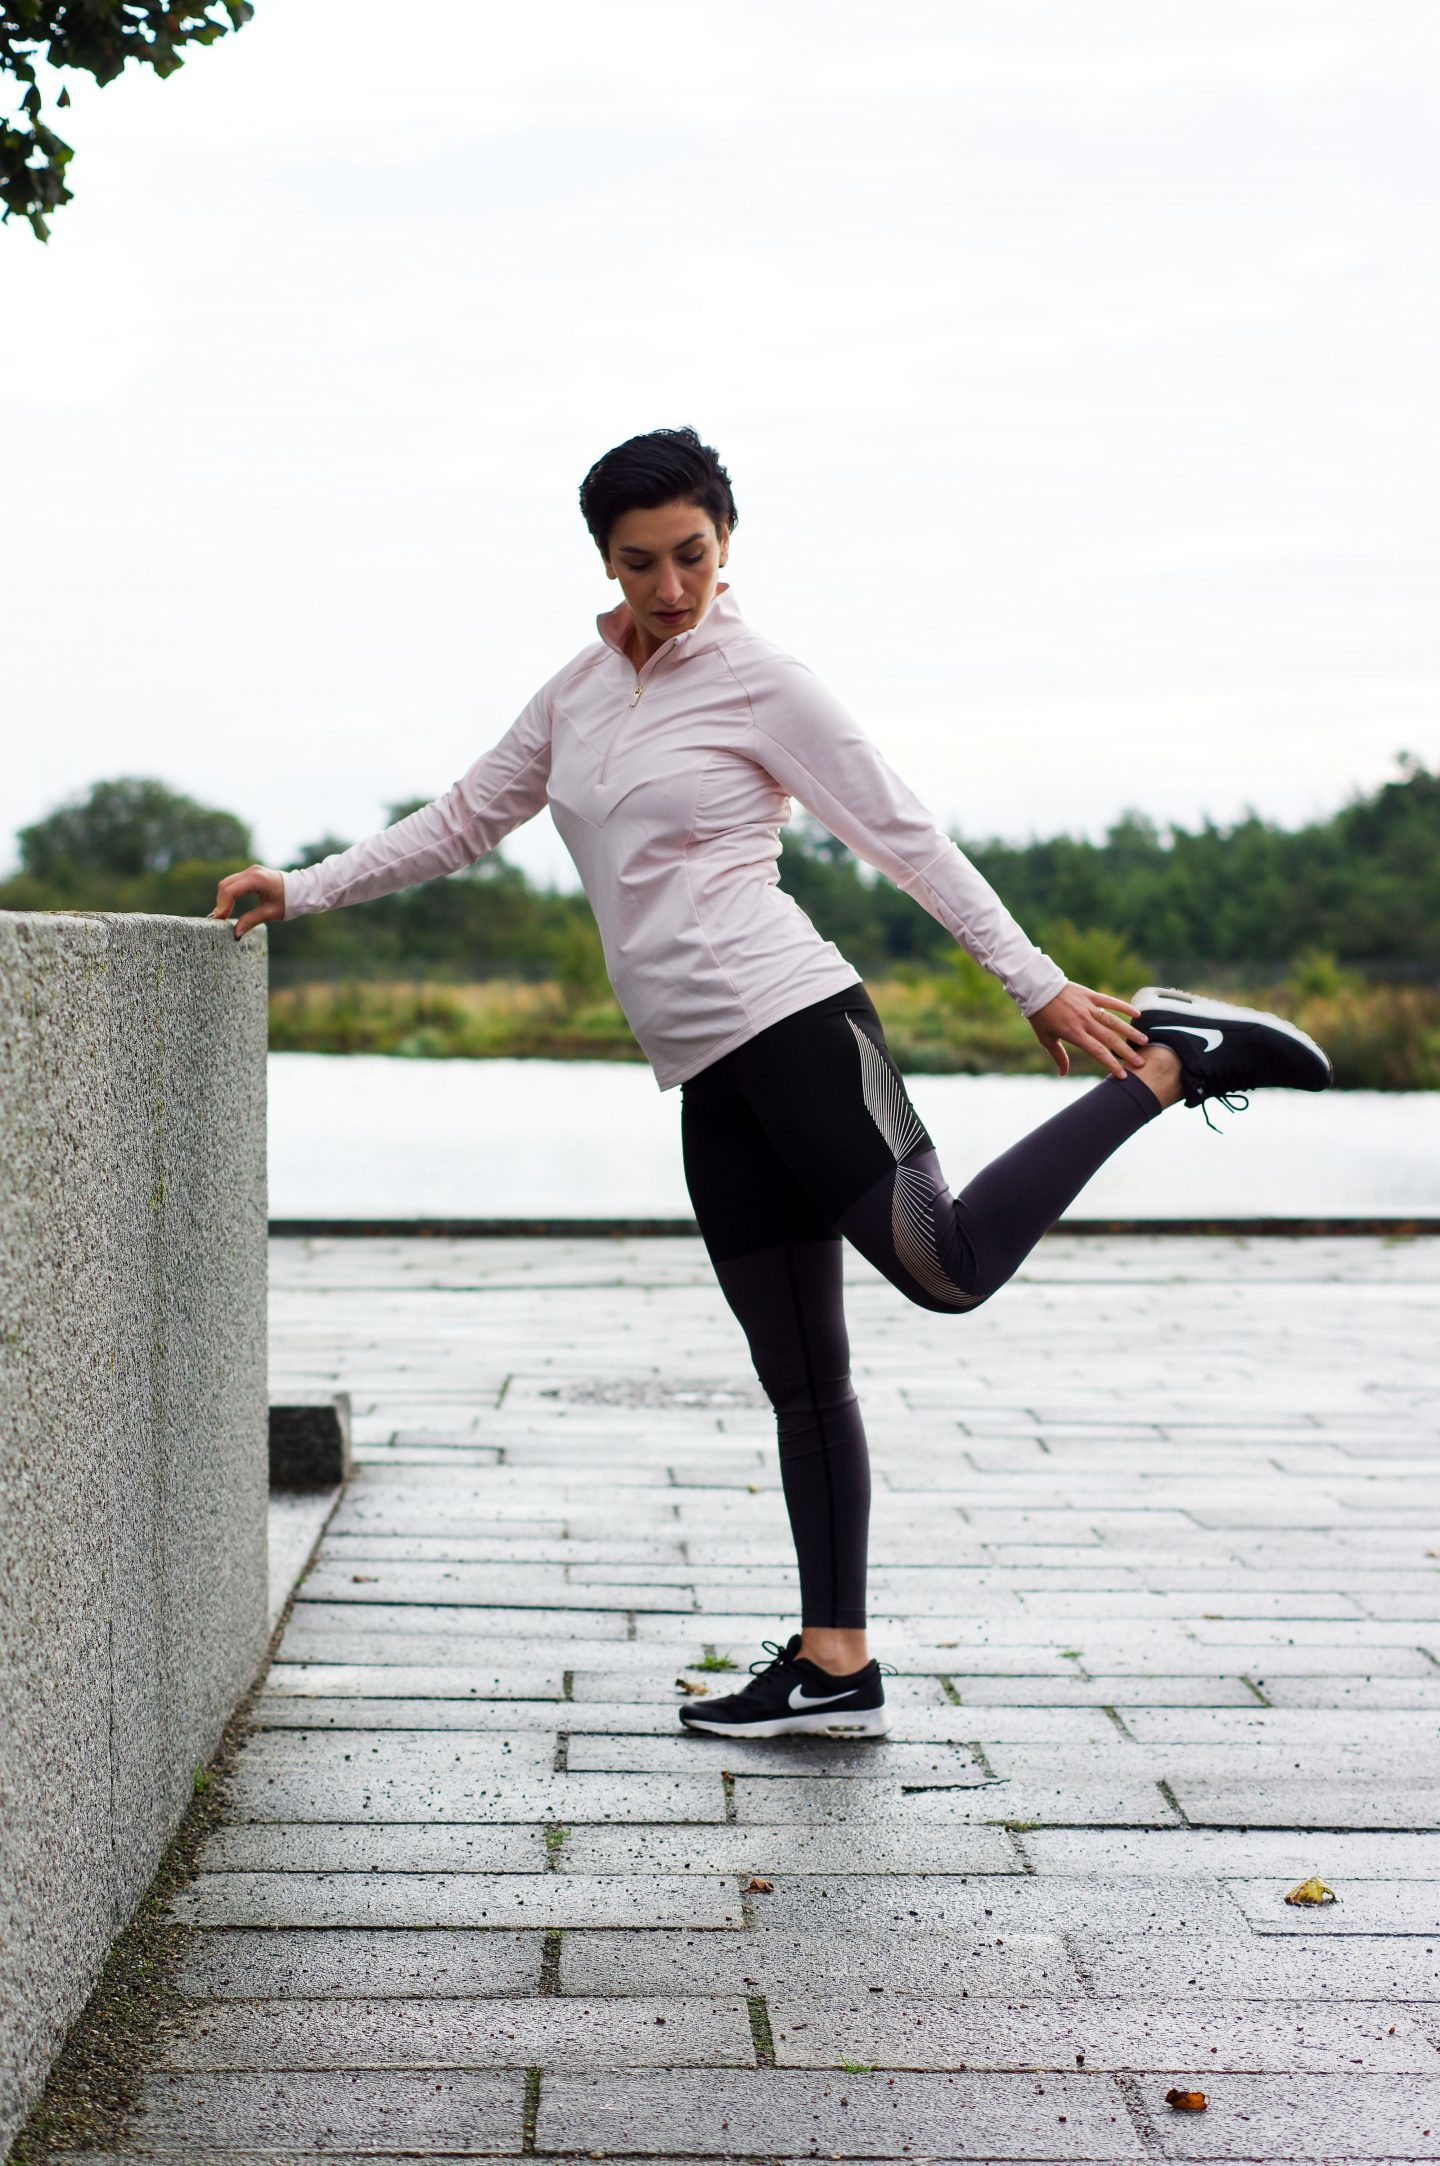 How to start exercising, running, running women clothes, adidas, sport blog or instagram, beyouverywell